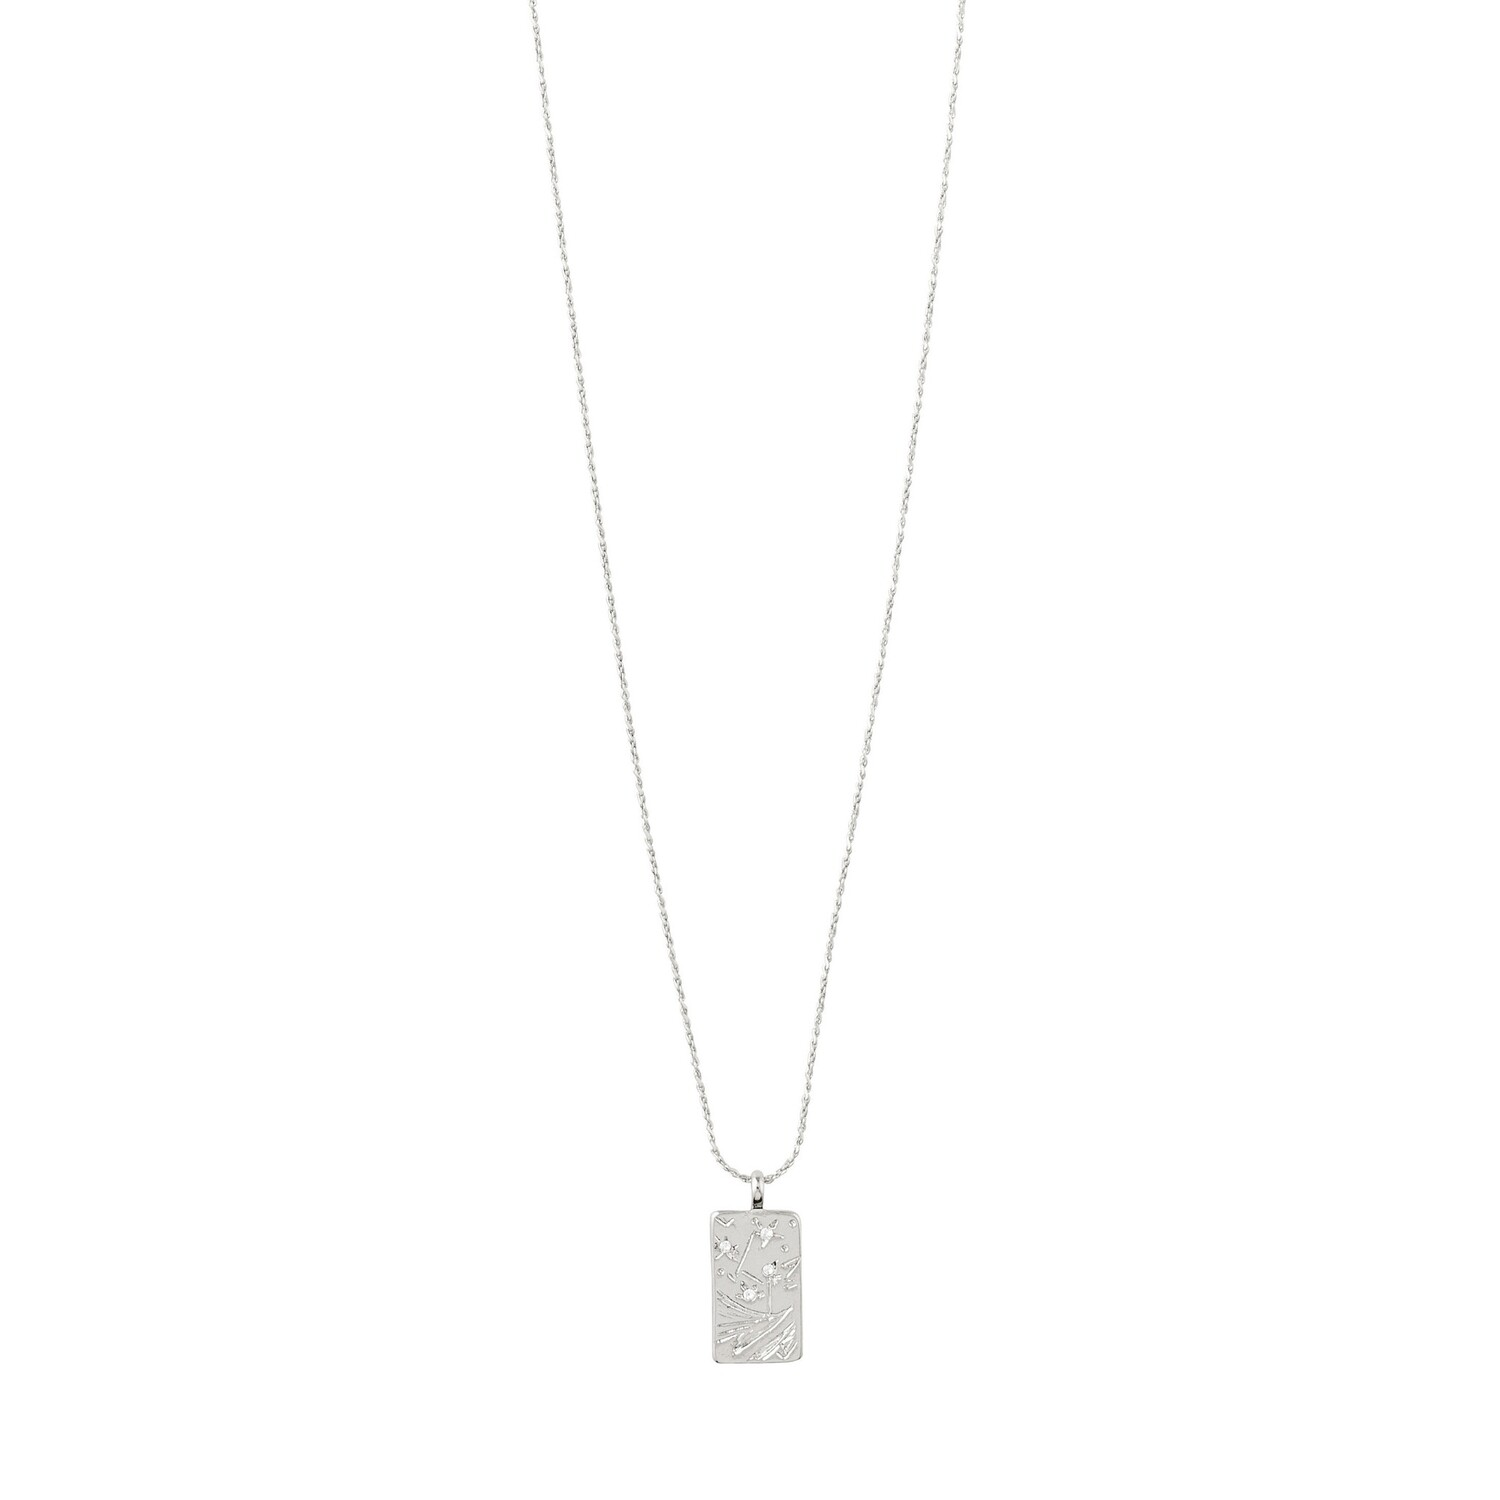 Pilgrim Silver Gracefulness Necklace